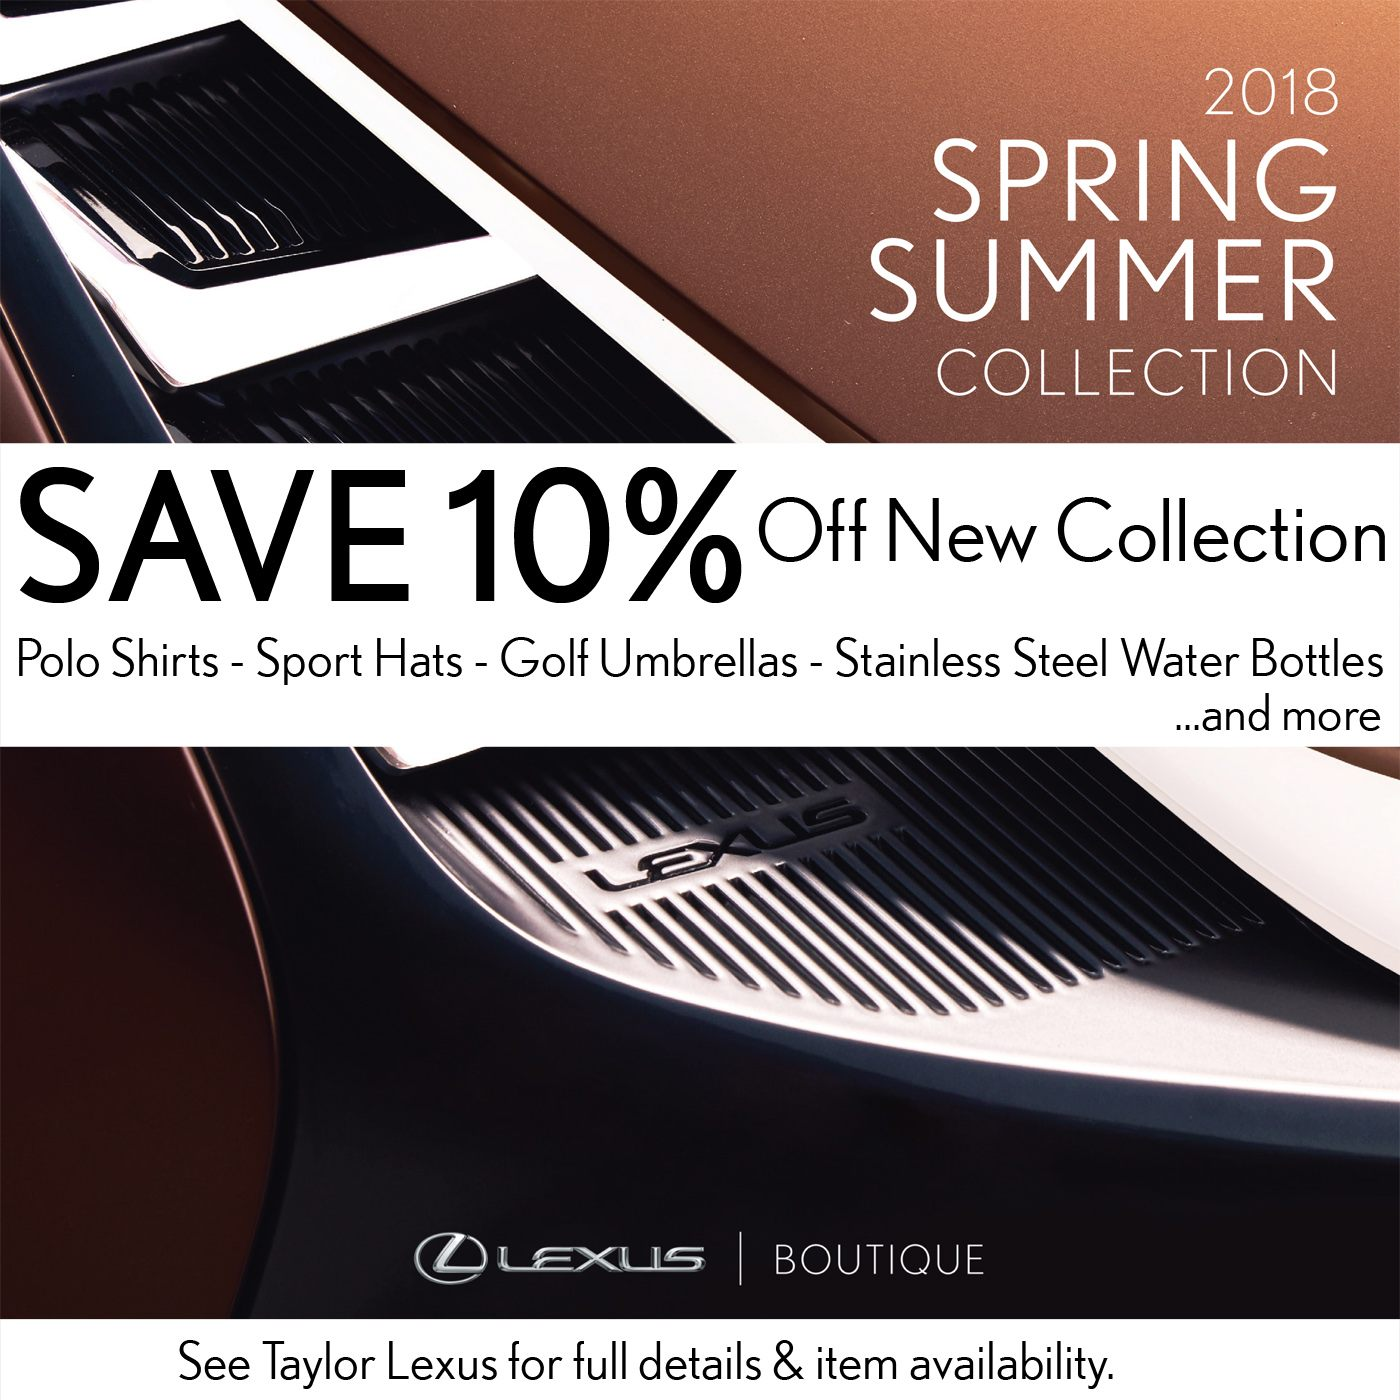 Save 10% on Lexus Boutique Items